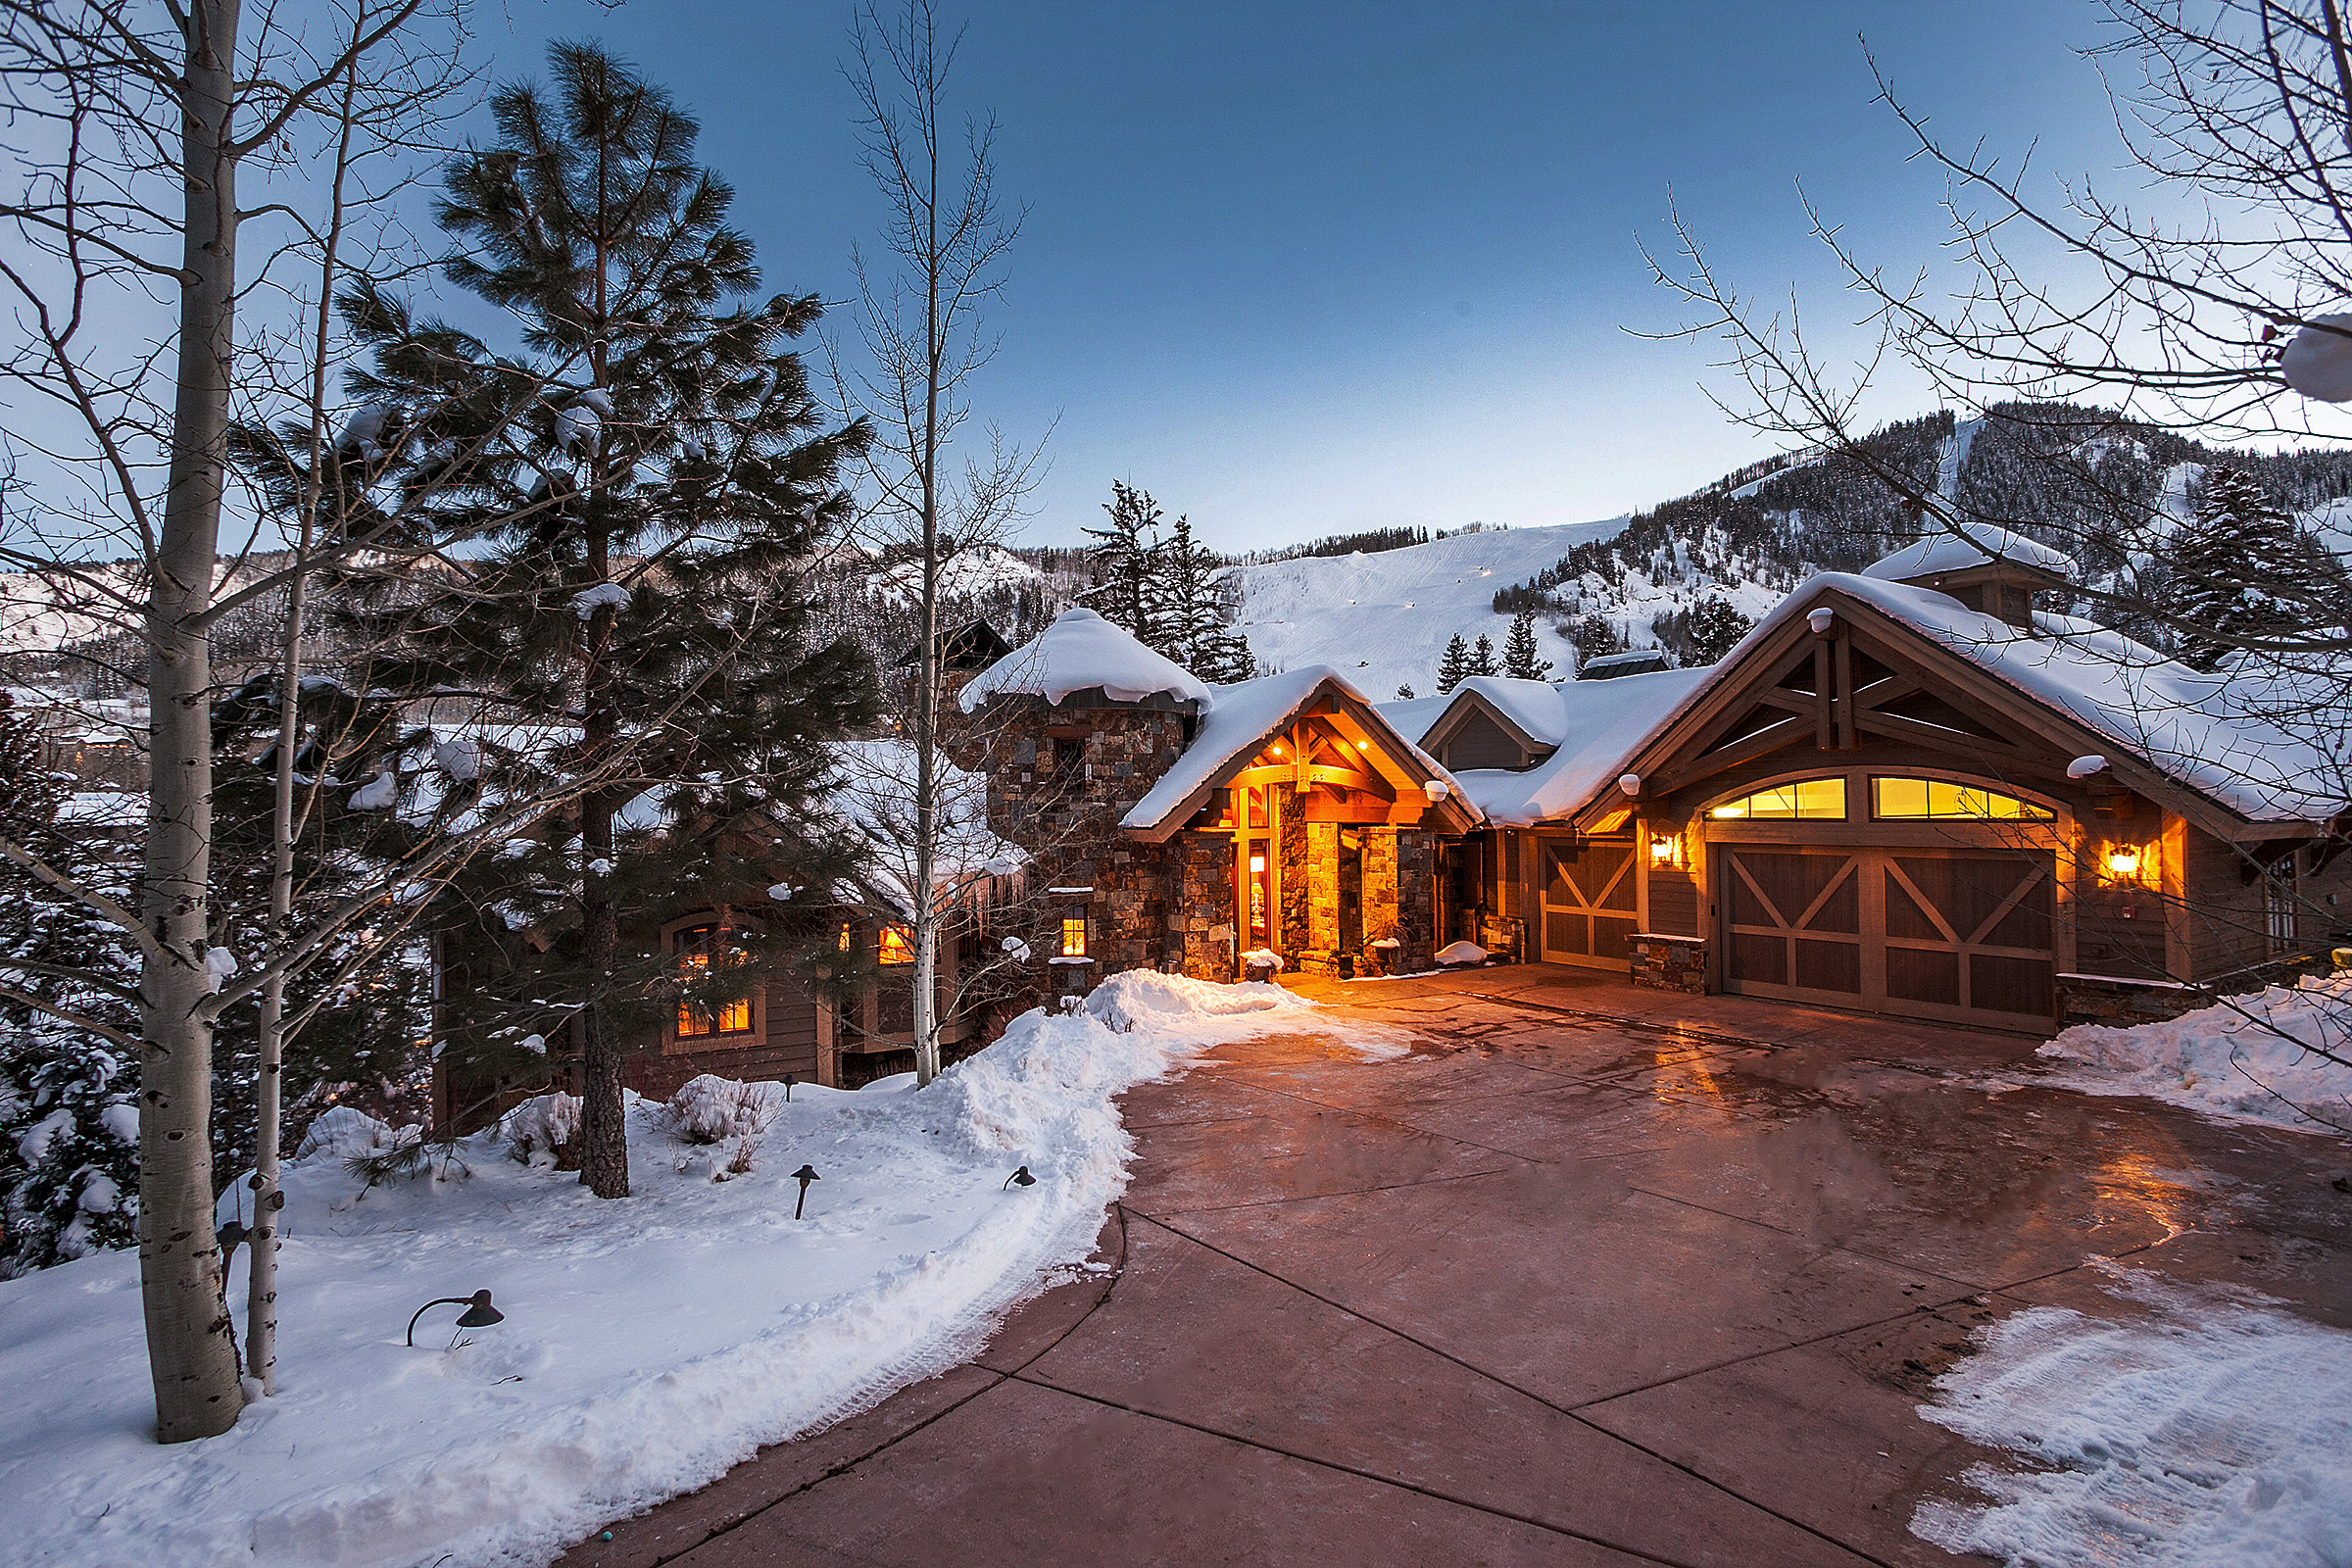 The Top 5 Advantages of Luxury Ski-In / Ski-Out Vacation Rental Homes